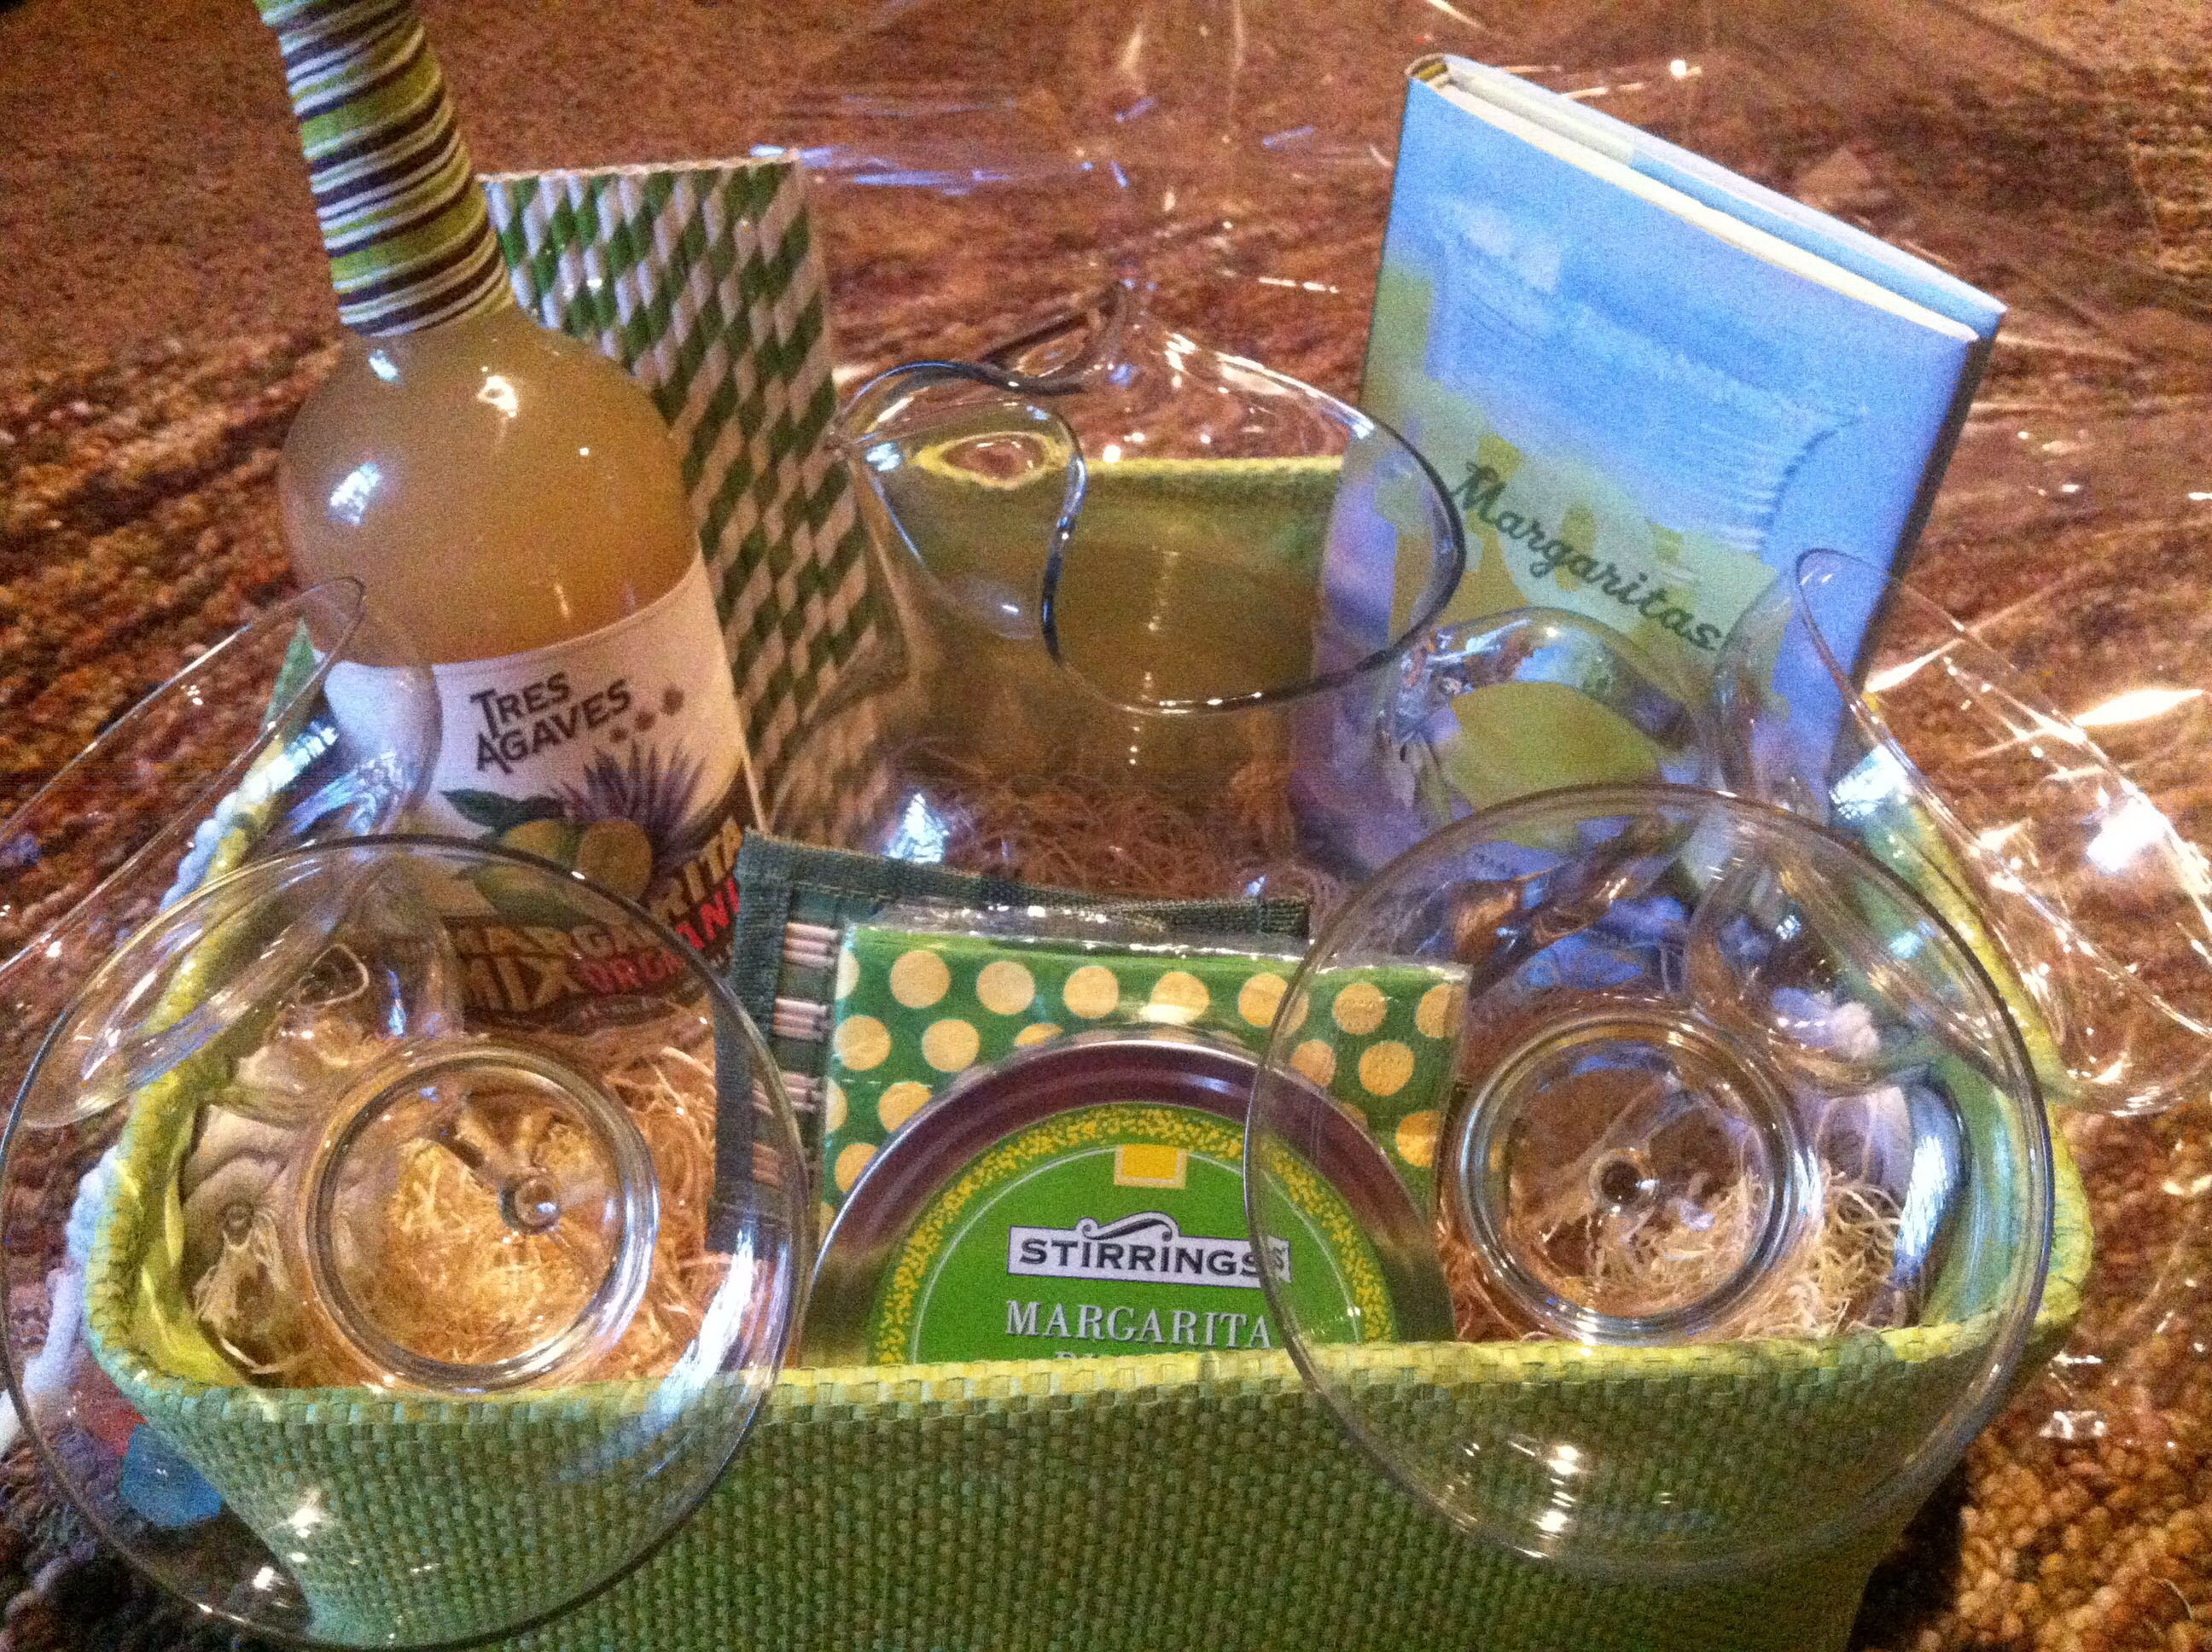 Best ideas about Stock The Bar Gift Ideas . Save or Pin Margarita t basket for a stock the bar bridal shower Now.